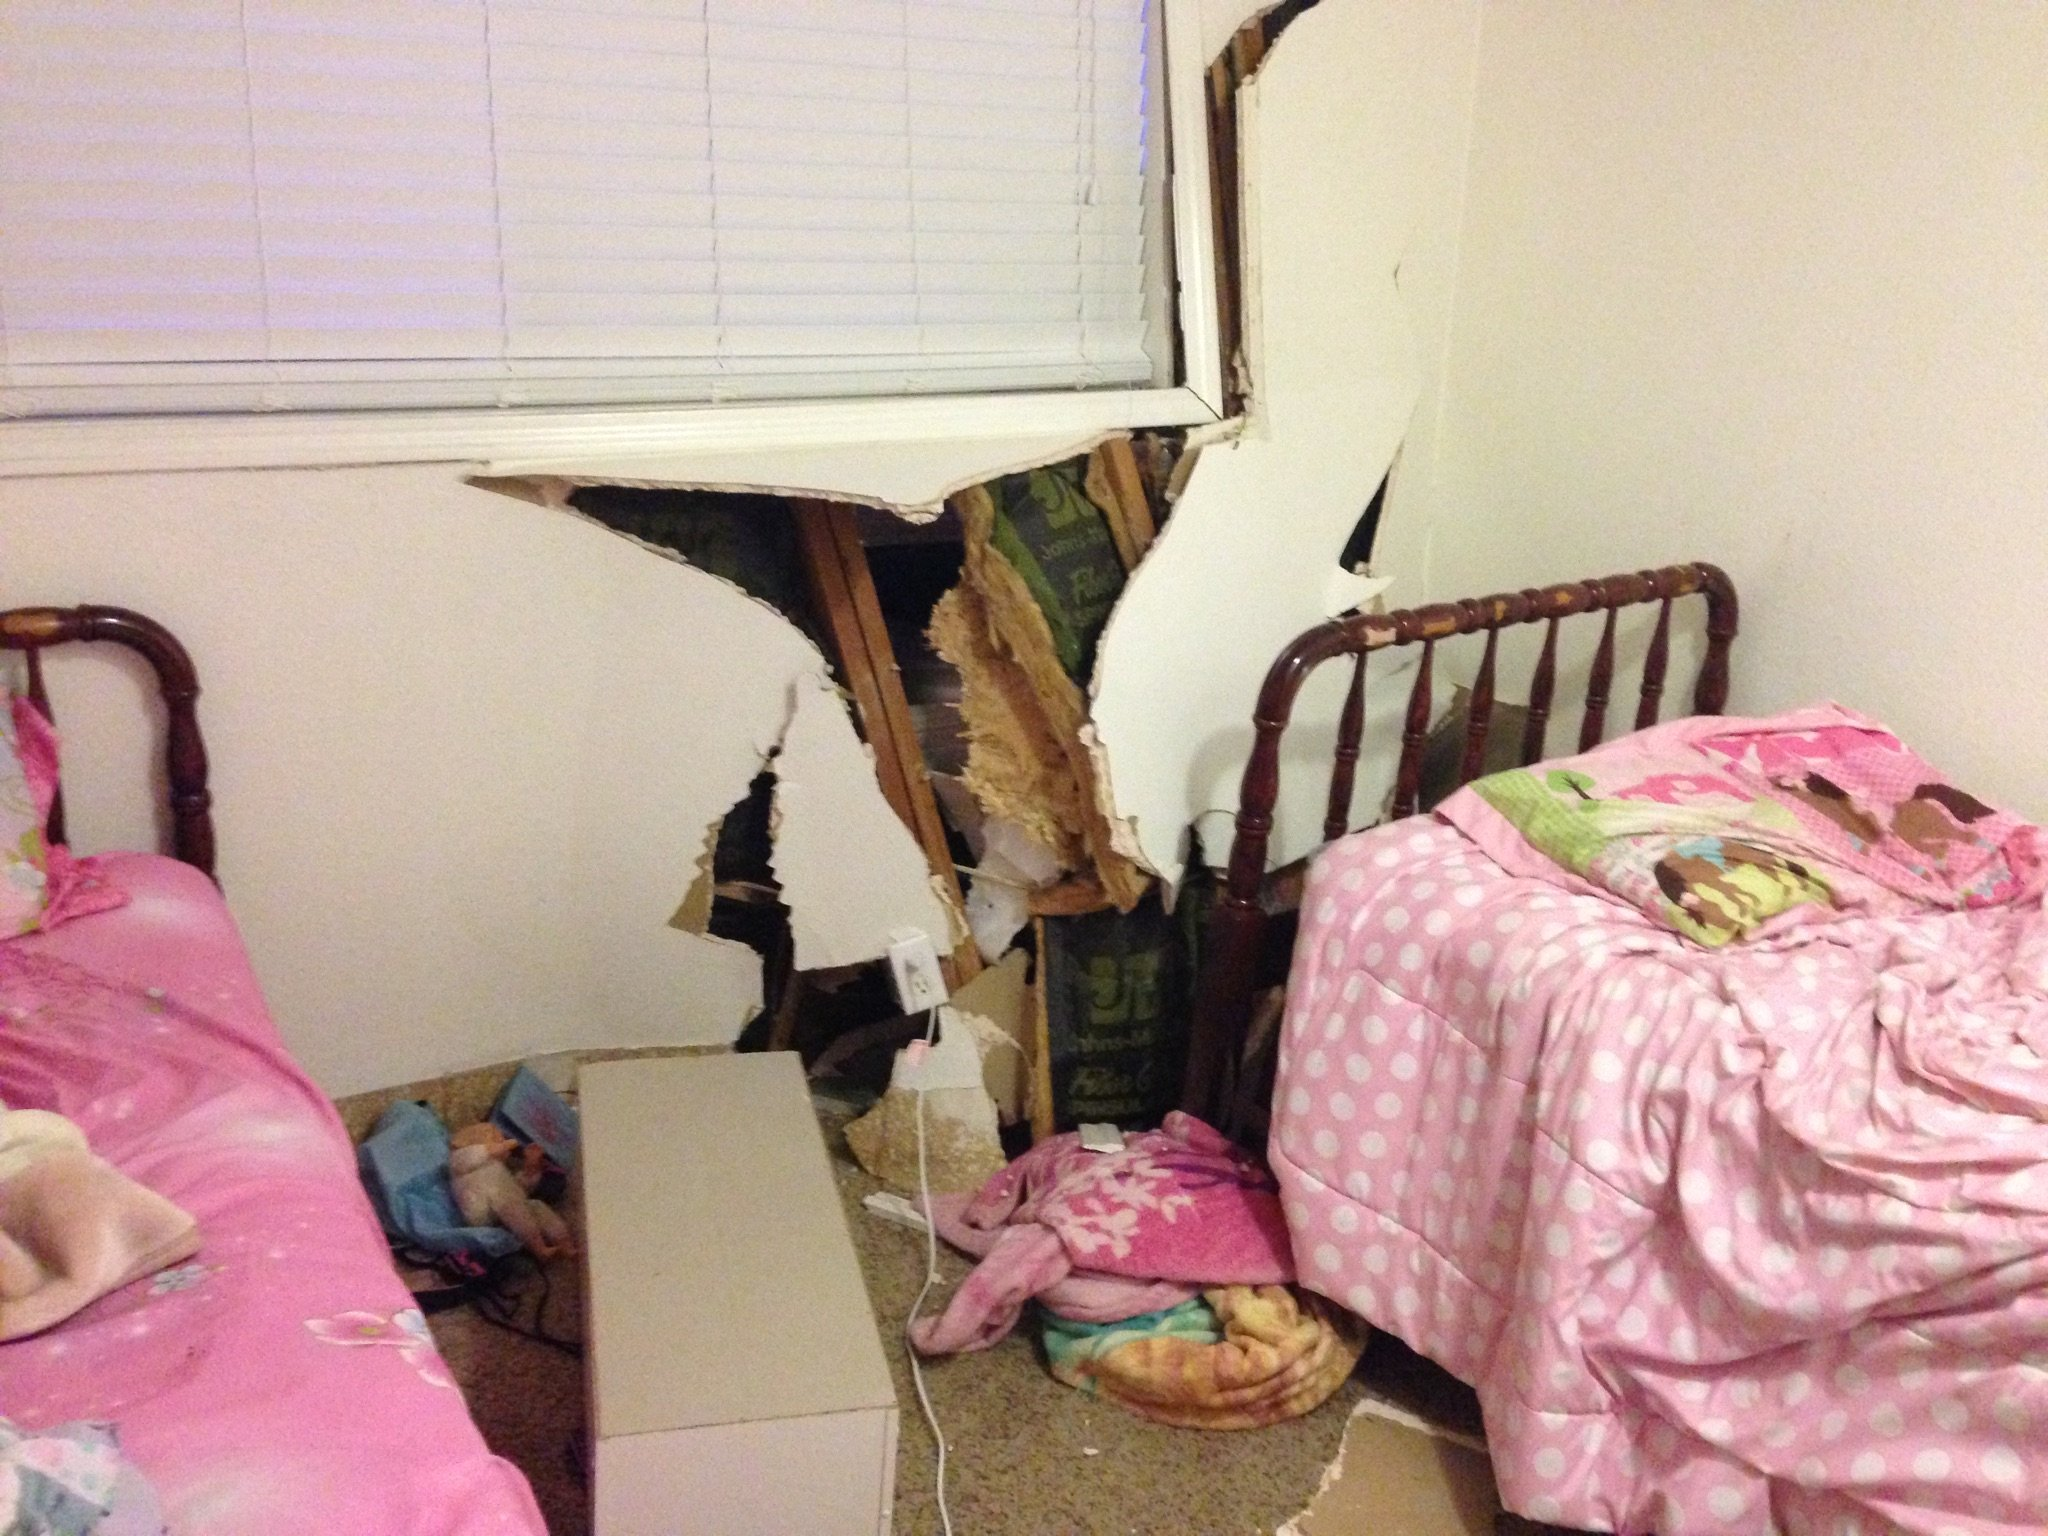 Car ends up in little girls' room